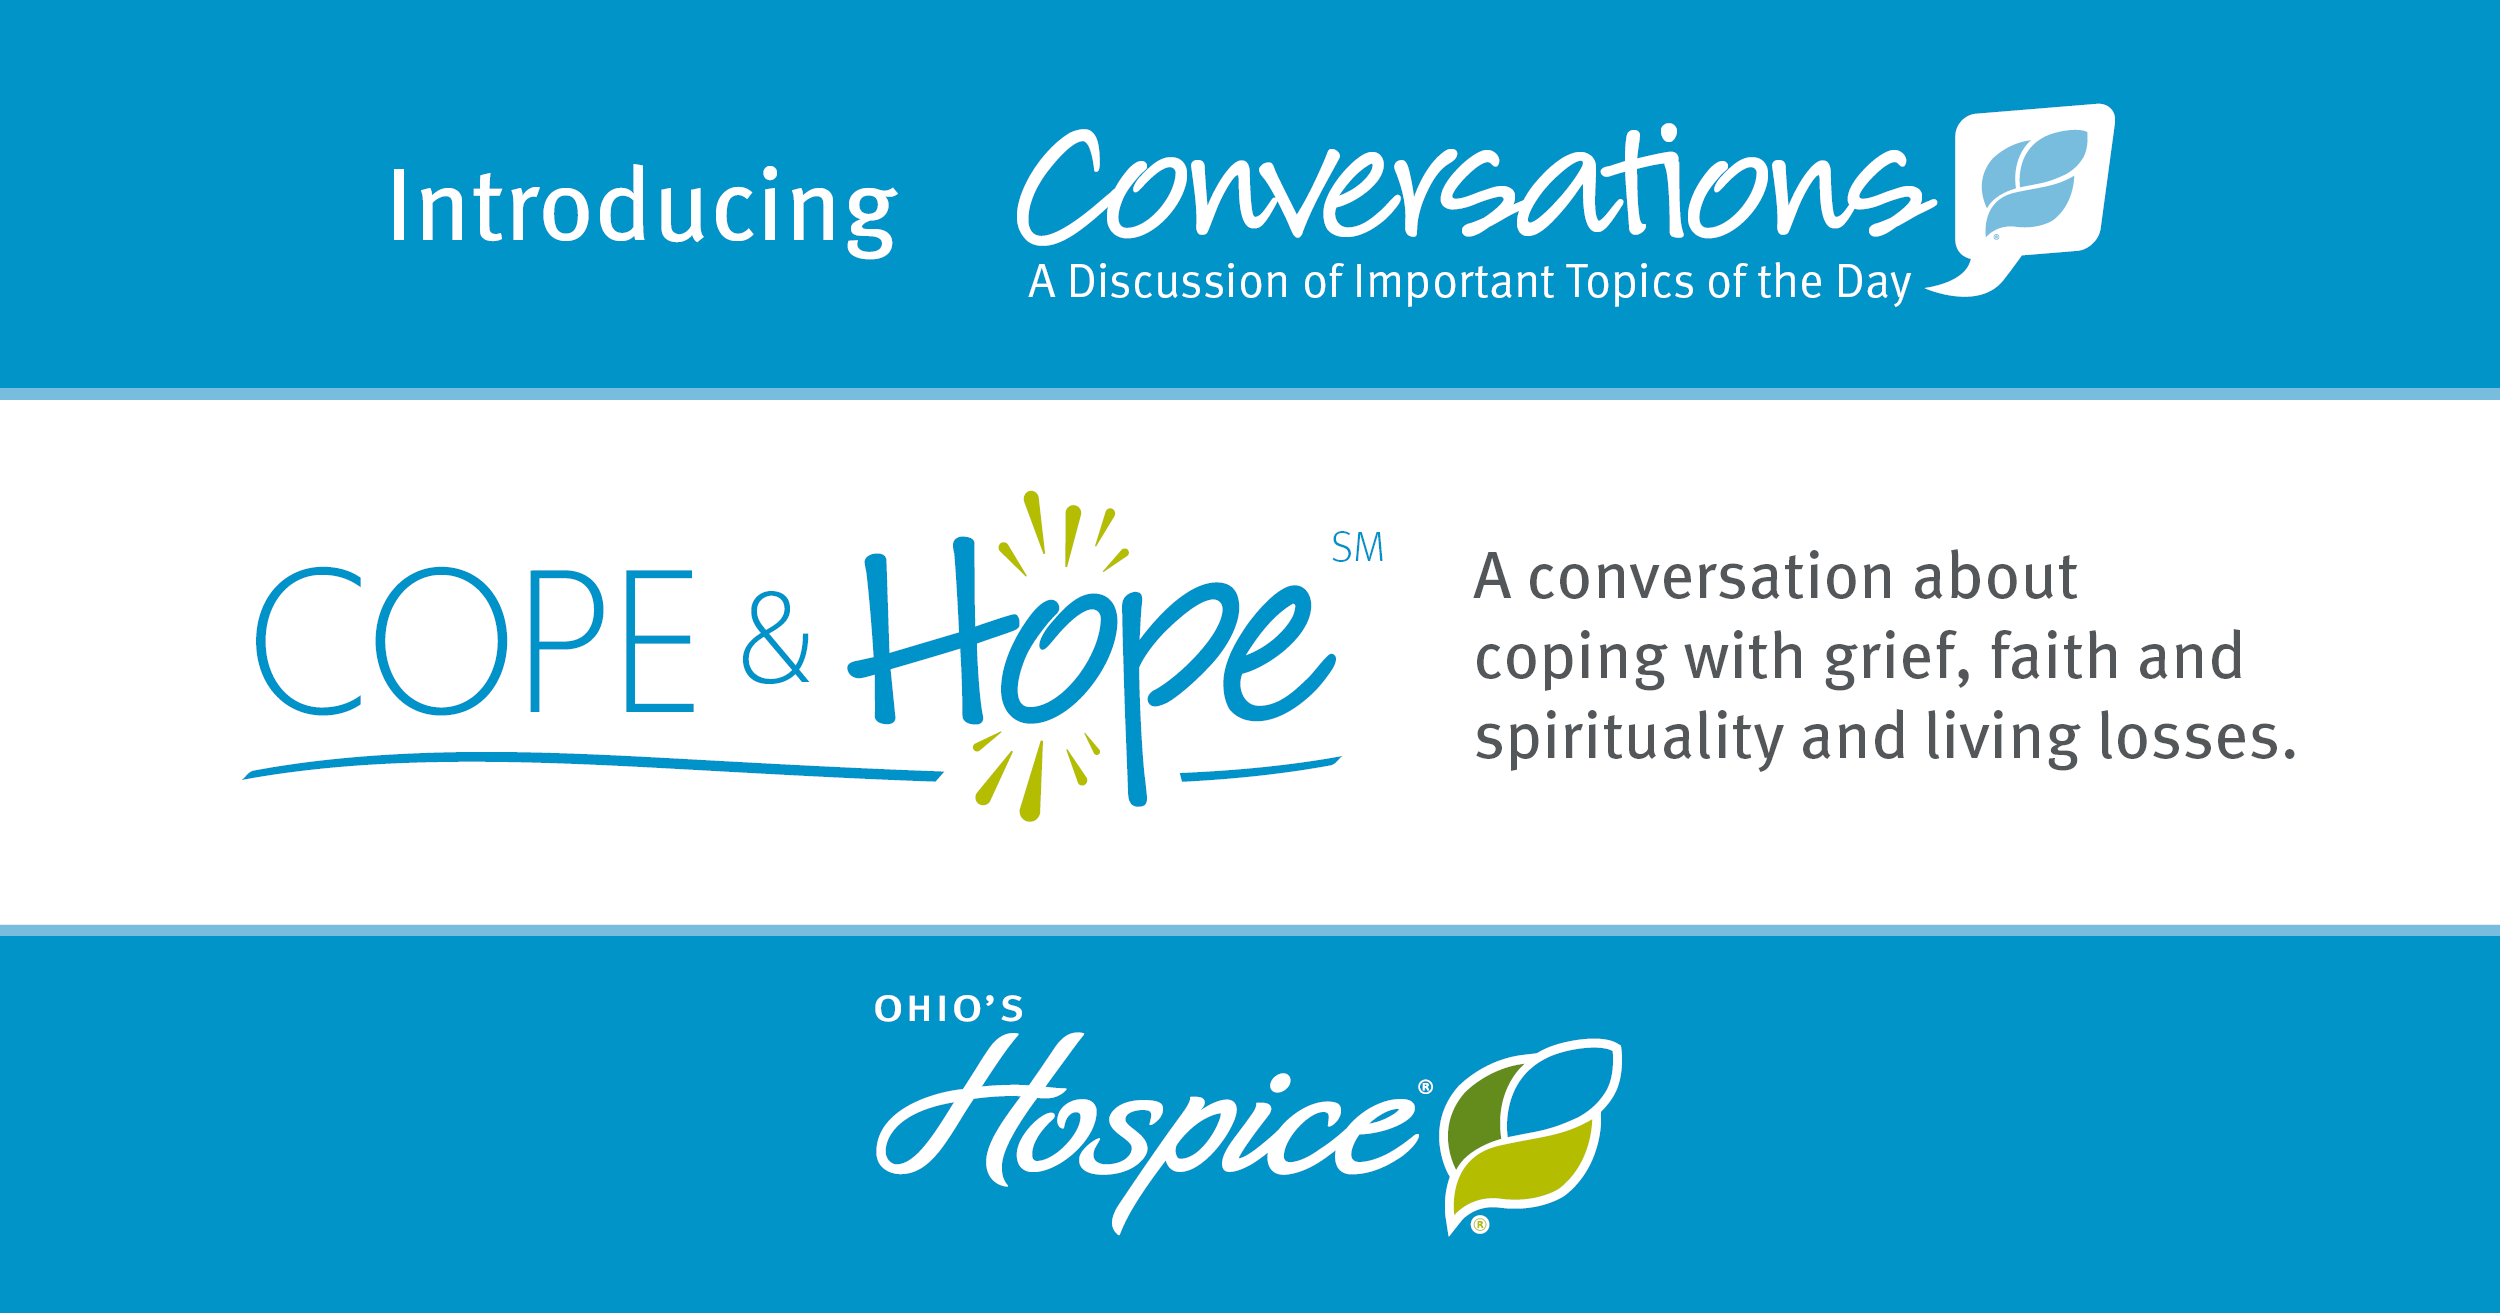 Introducing Conversations, A Discussion Of Important Topics Of The Day. Cope & Hope, A Conversation About Coping With Grief, Faith And Spirituality And Living Losses.